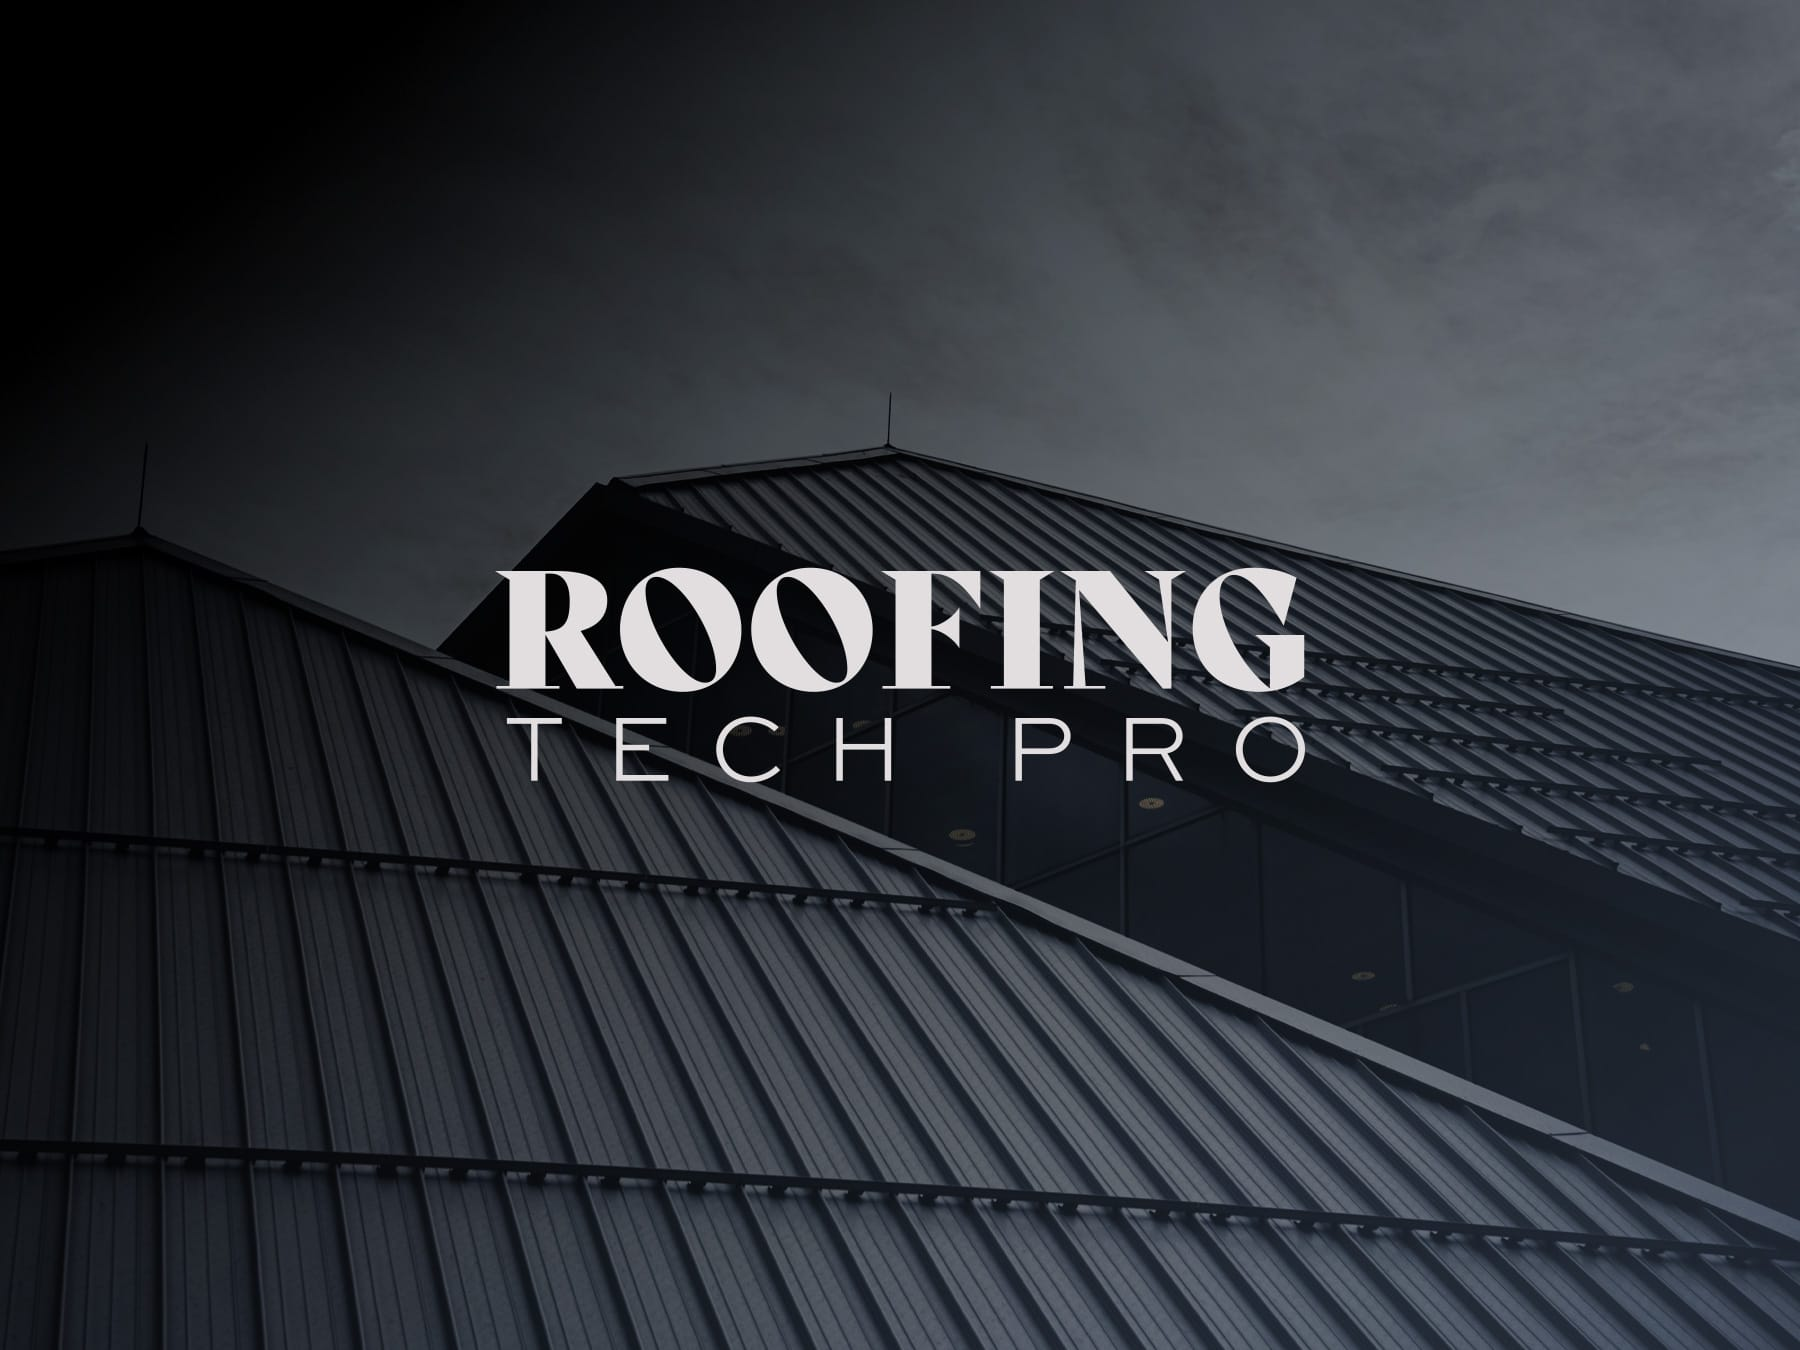 Roofing Tech Pro